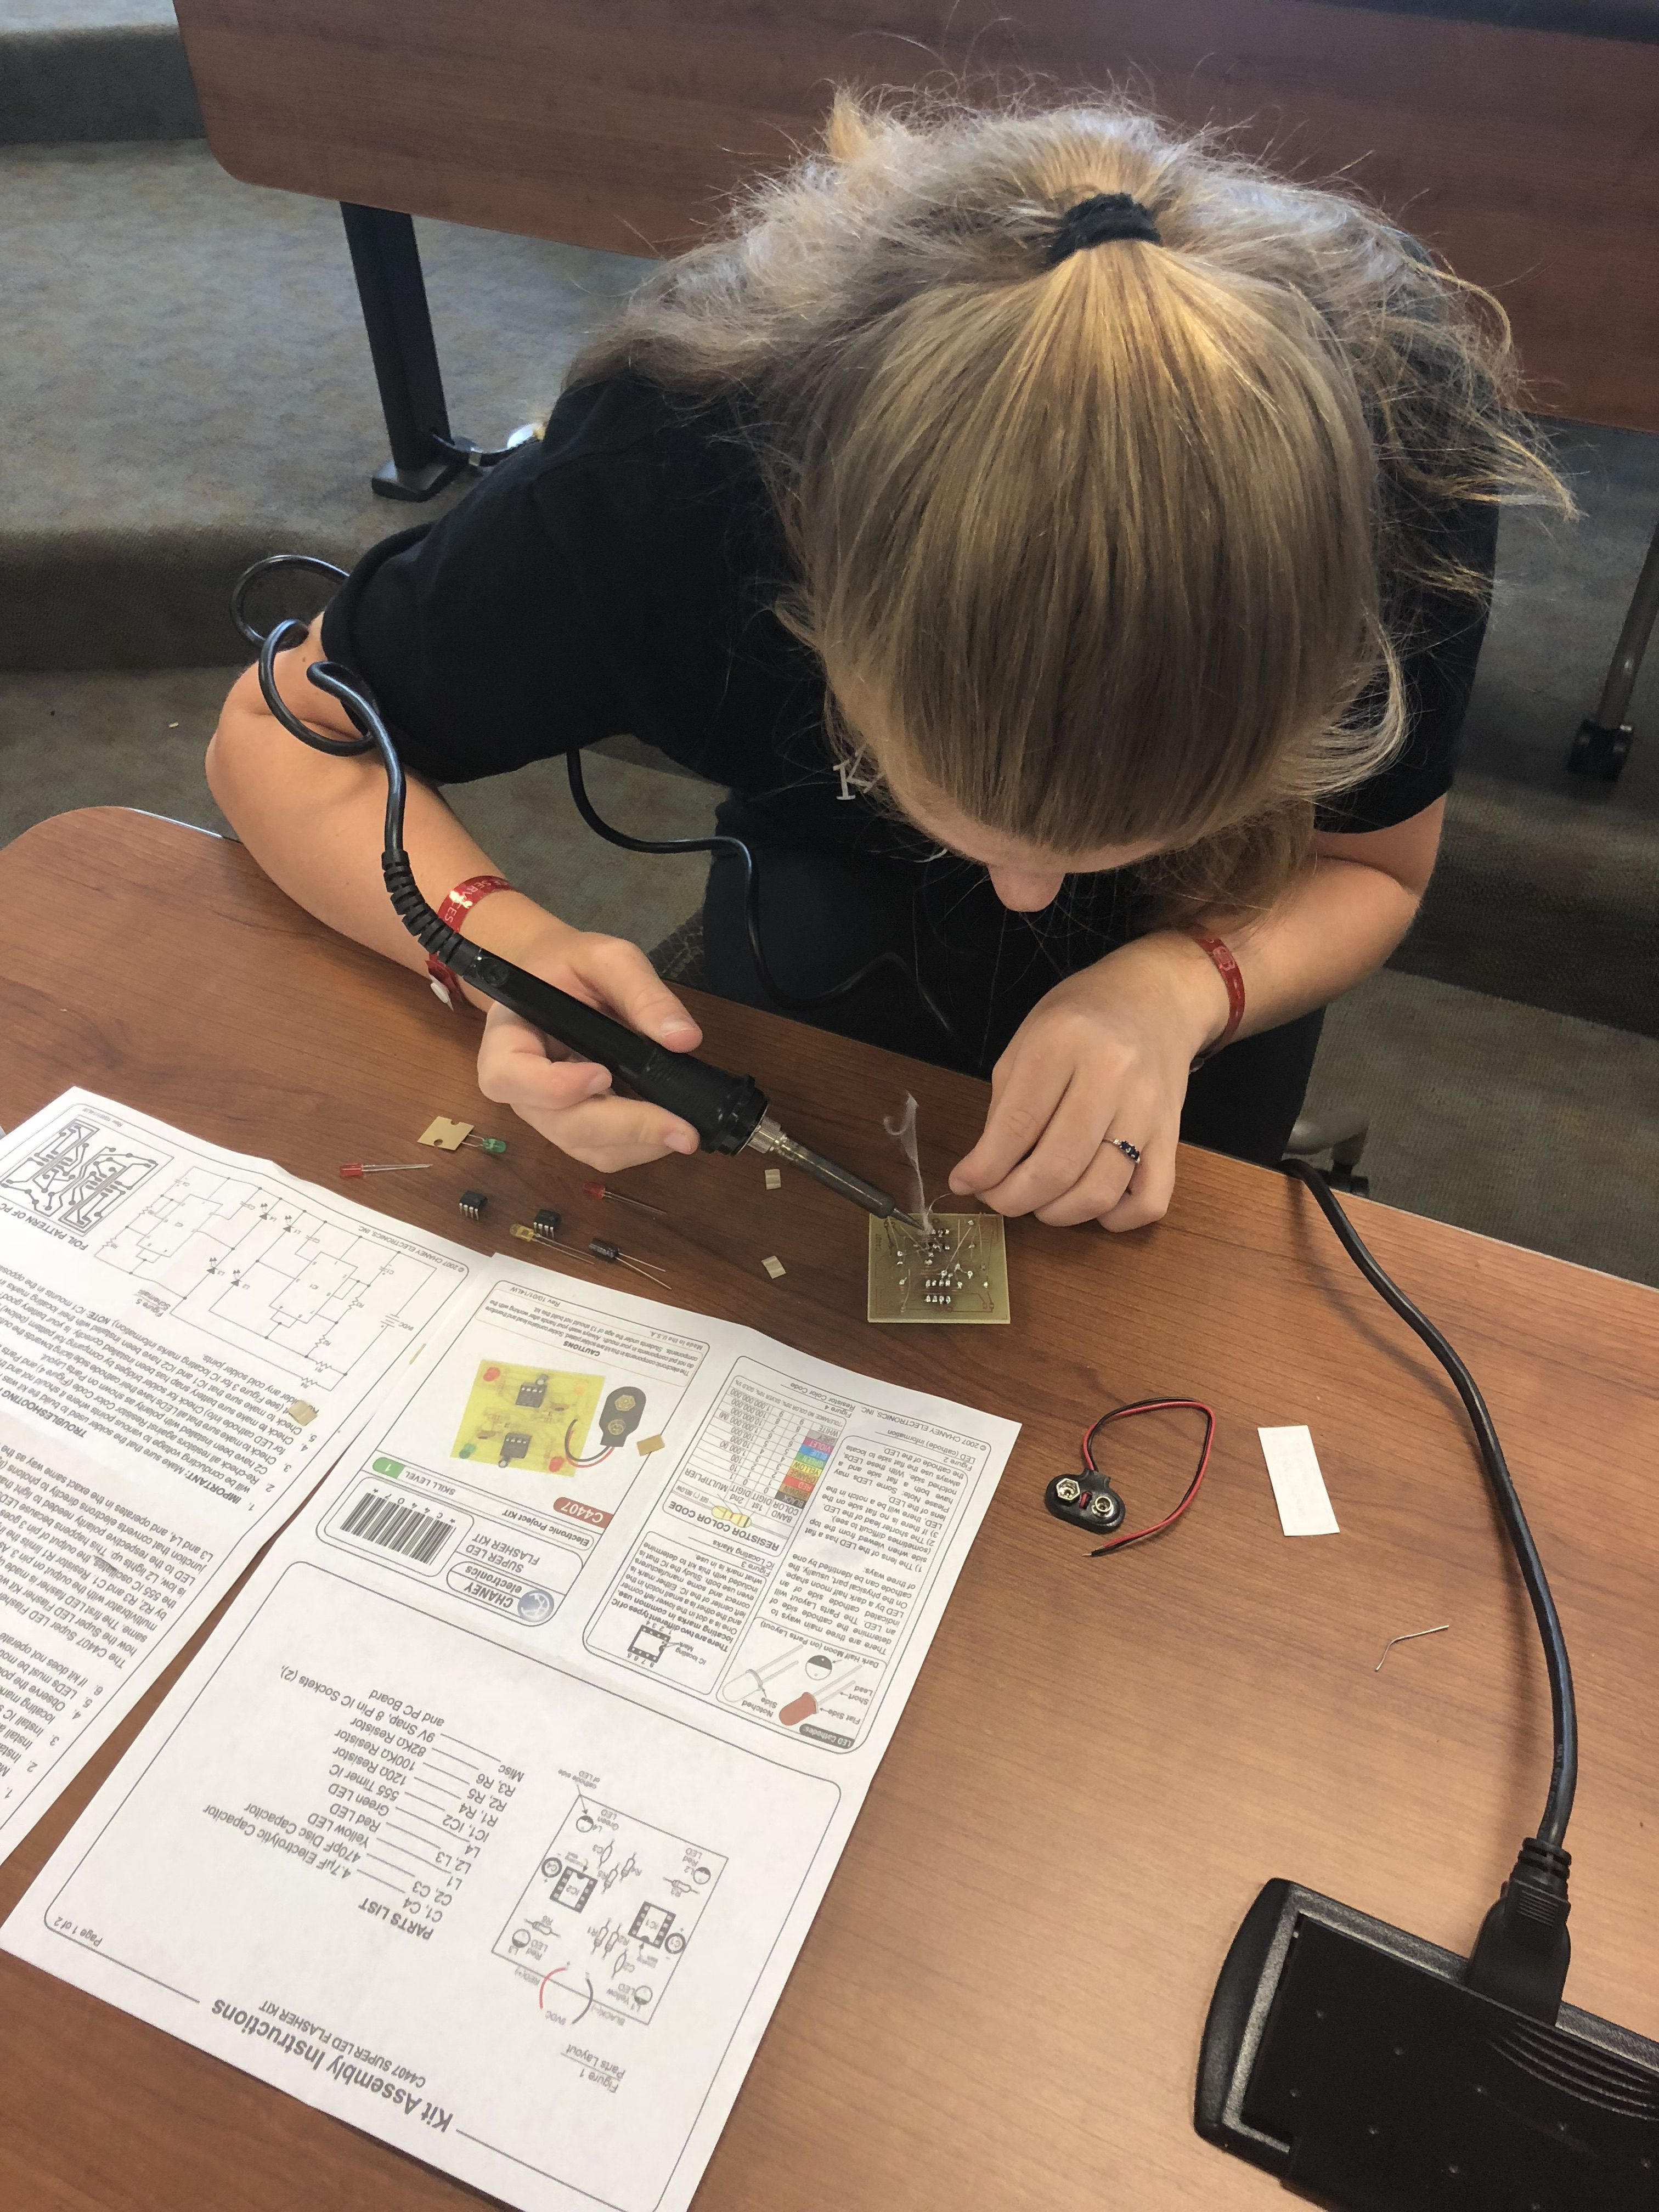 Dare County 4-Her, Madison Sawyer, learning how to solder at Electric Congress.